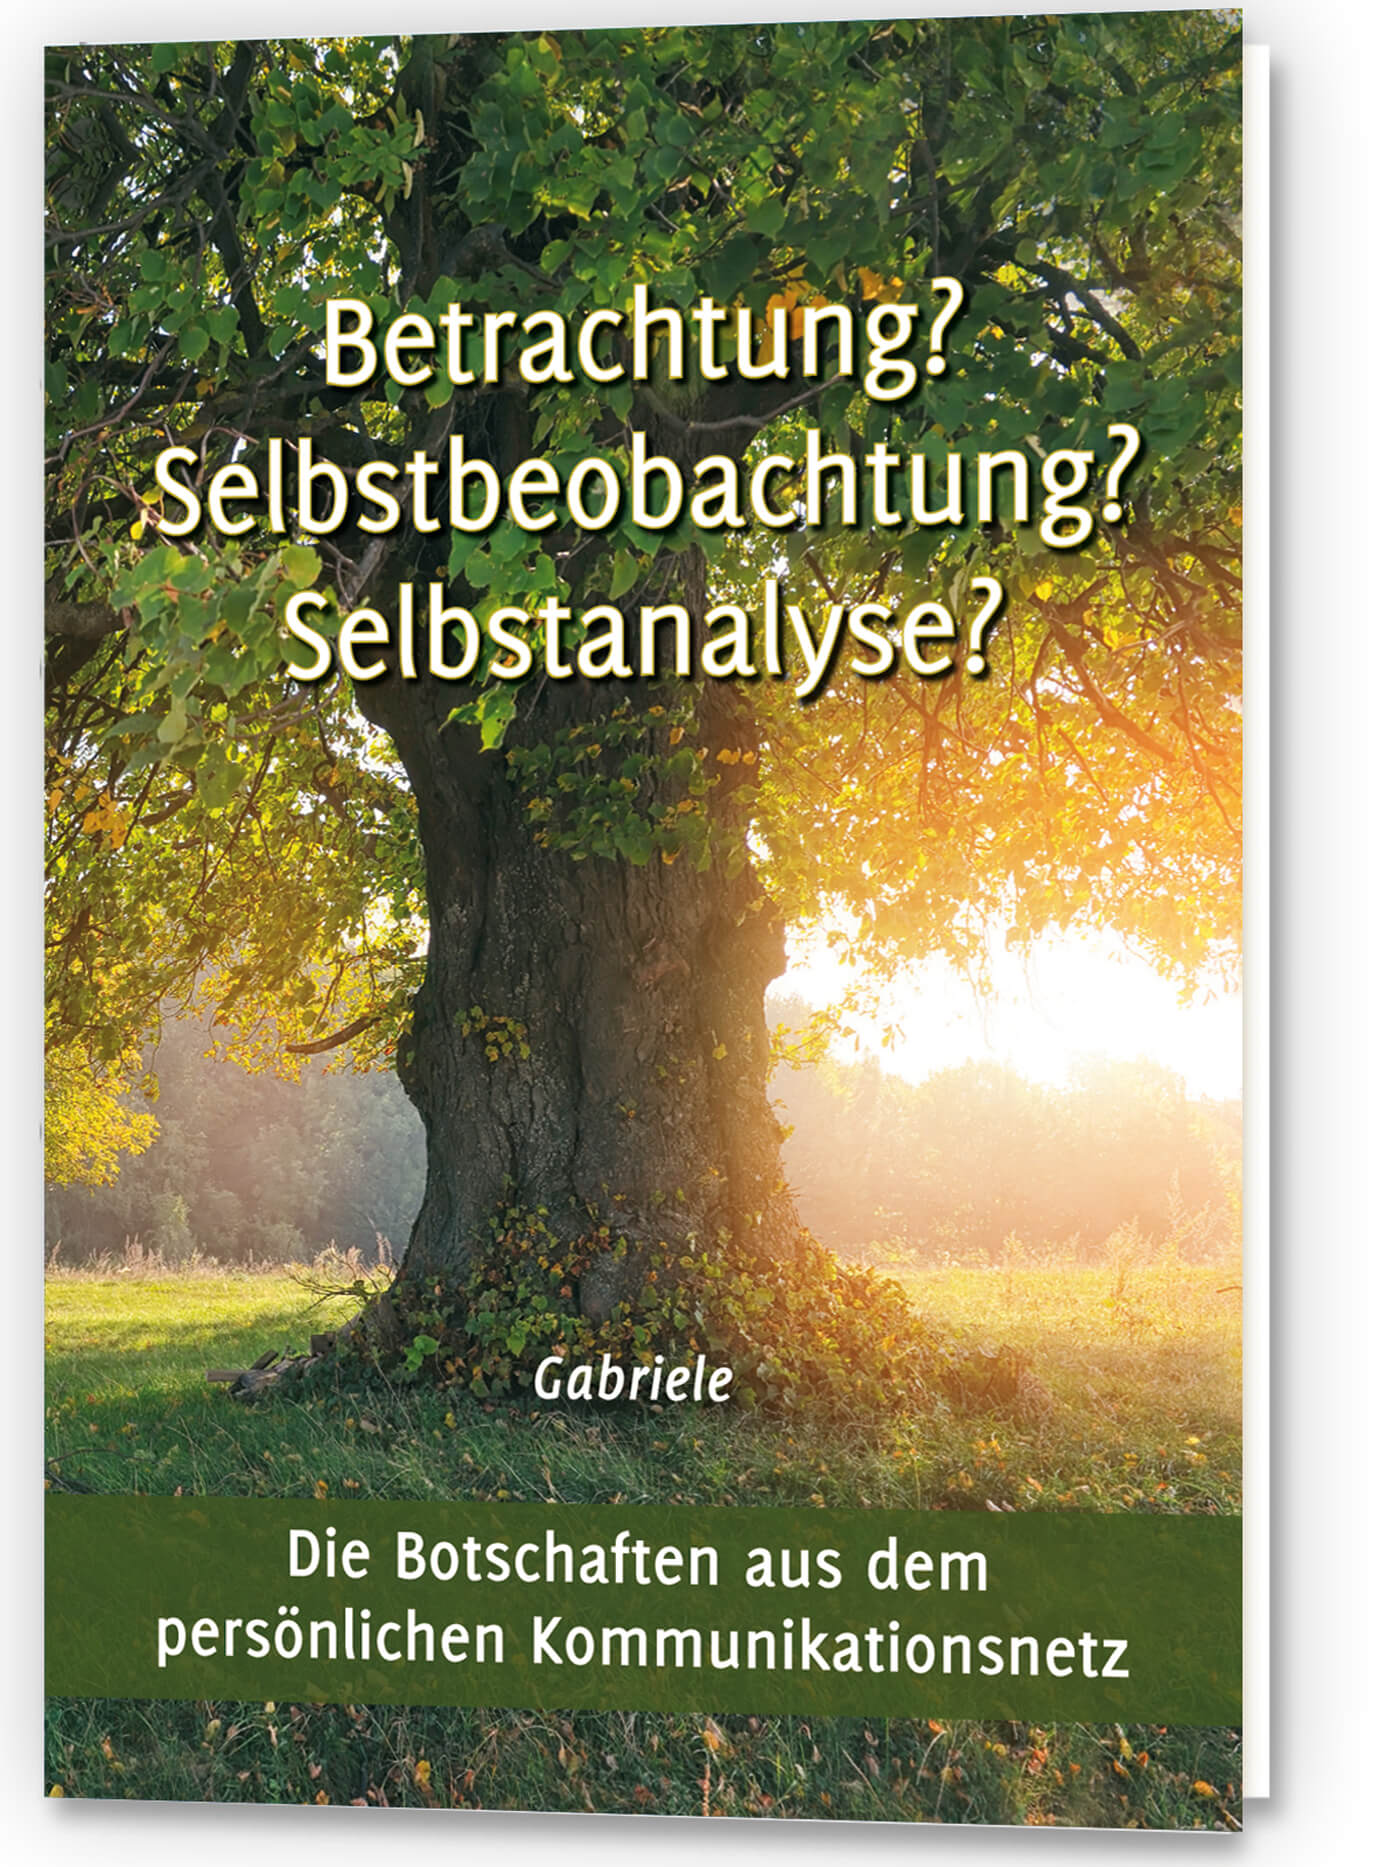 Betrachtung? Selbstbeobachtung? Selbstanalyse?